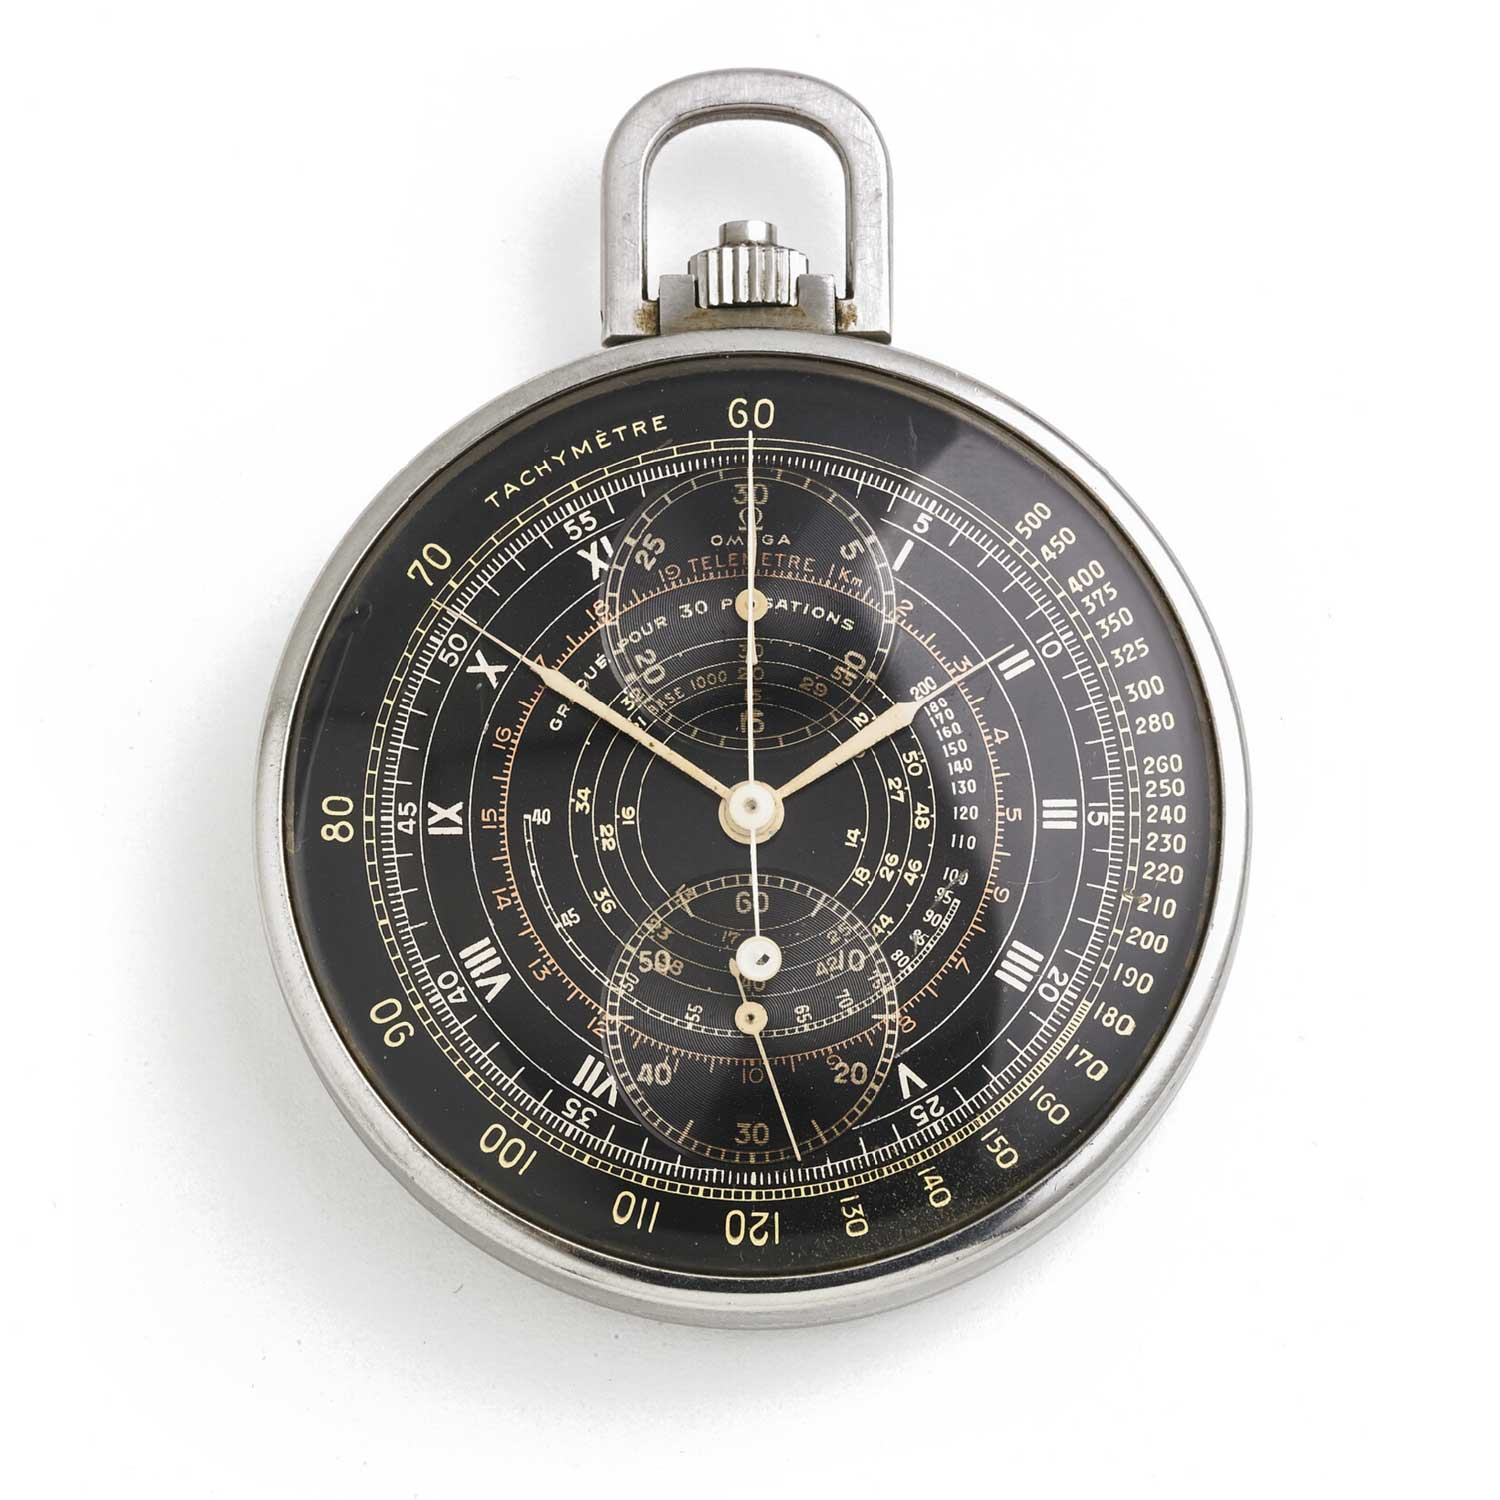 A multi-scale Omega monopusher chronograph ref. 1067 from the 1940s, powered by the Calibre 39 CHRO (Image: bruun-rasmussen.dk)